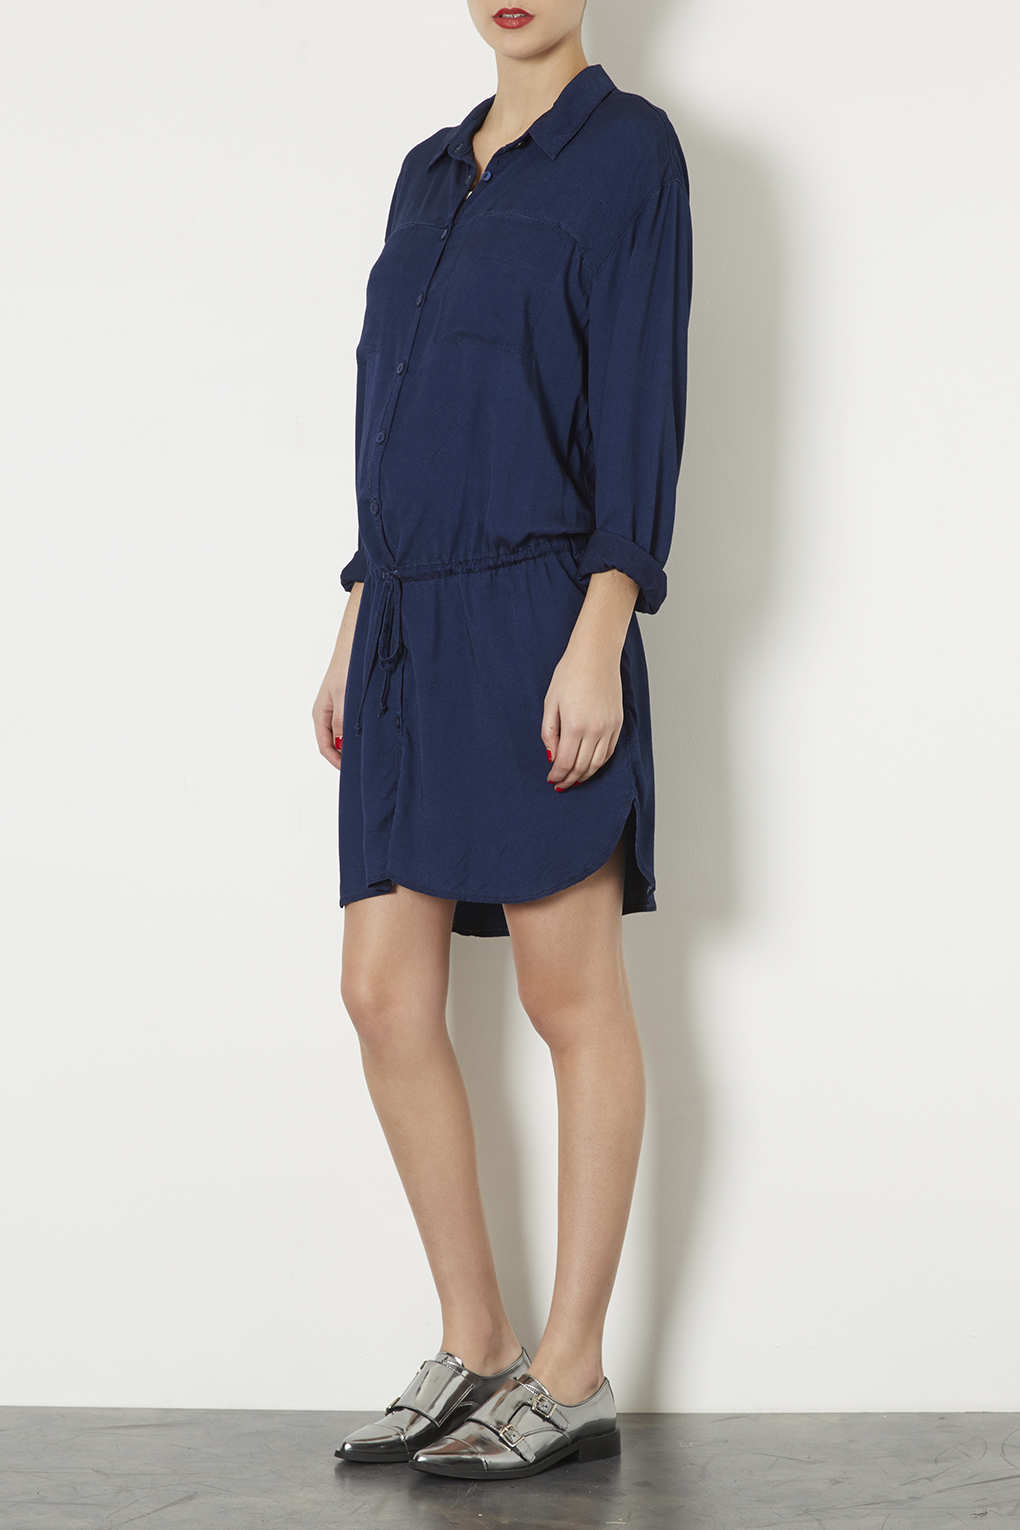 Lyst topshop maternity denim shirt dress in blue for Womens denim shirts topshop